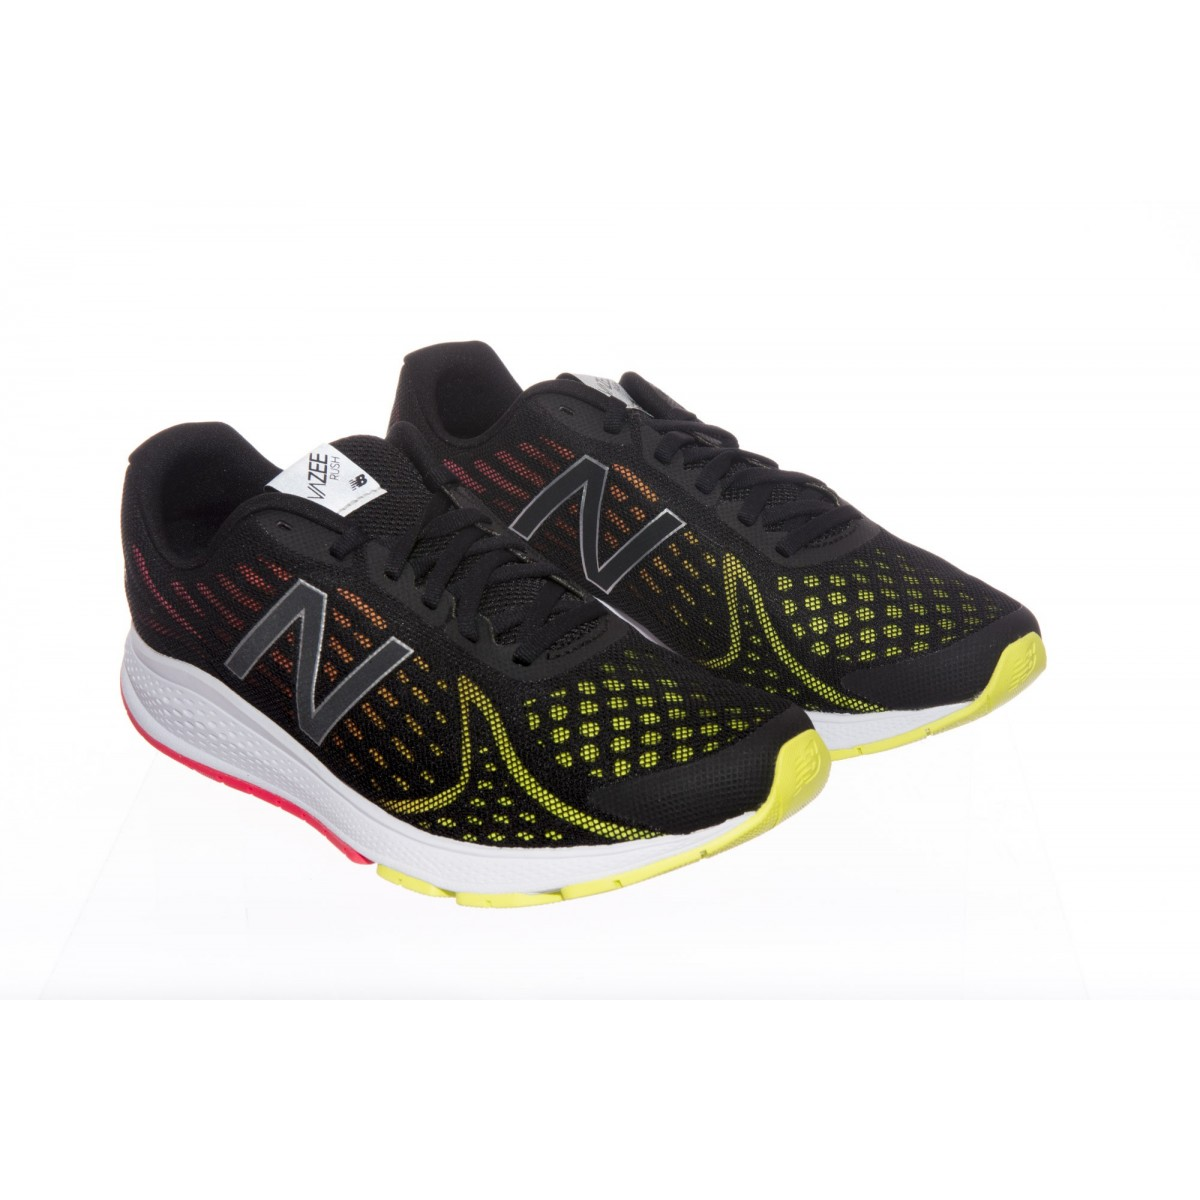 Scarpa New balance - M rush running fashion